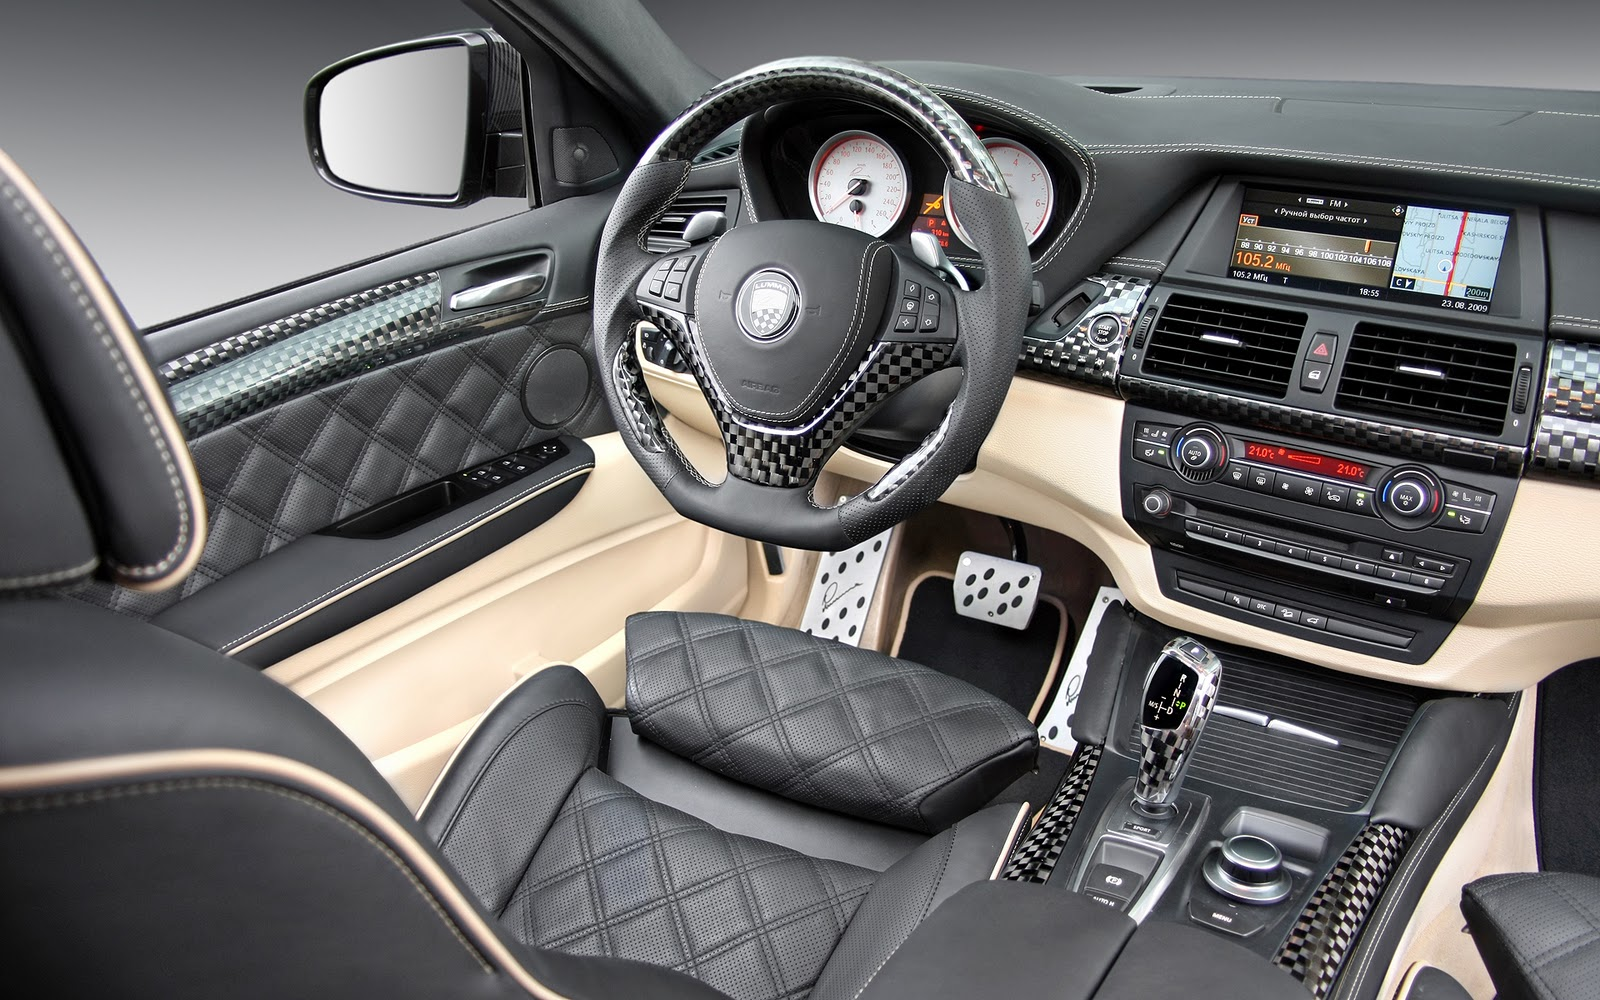 Cool car wallpapers bmw x6 2011 interior for Auto interieur bekleden prijs